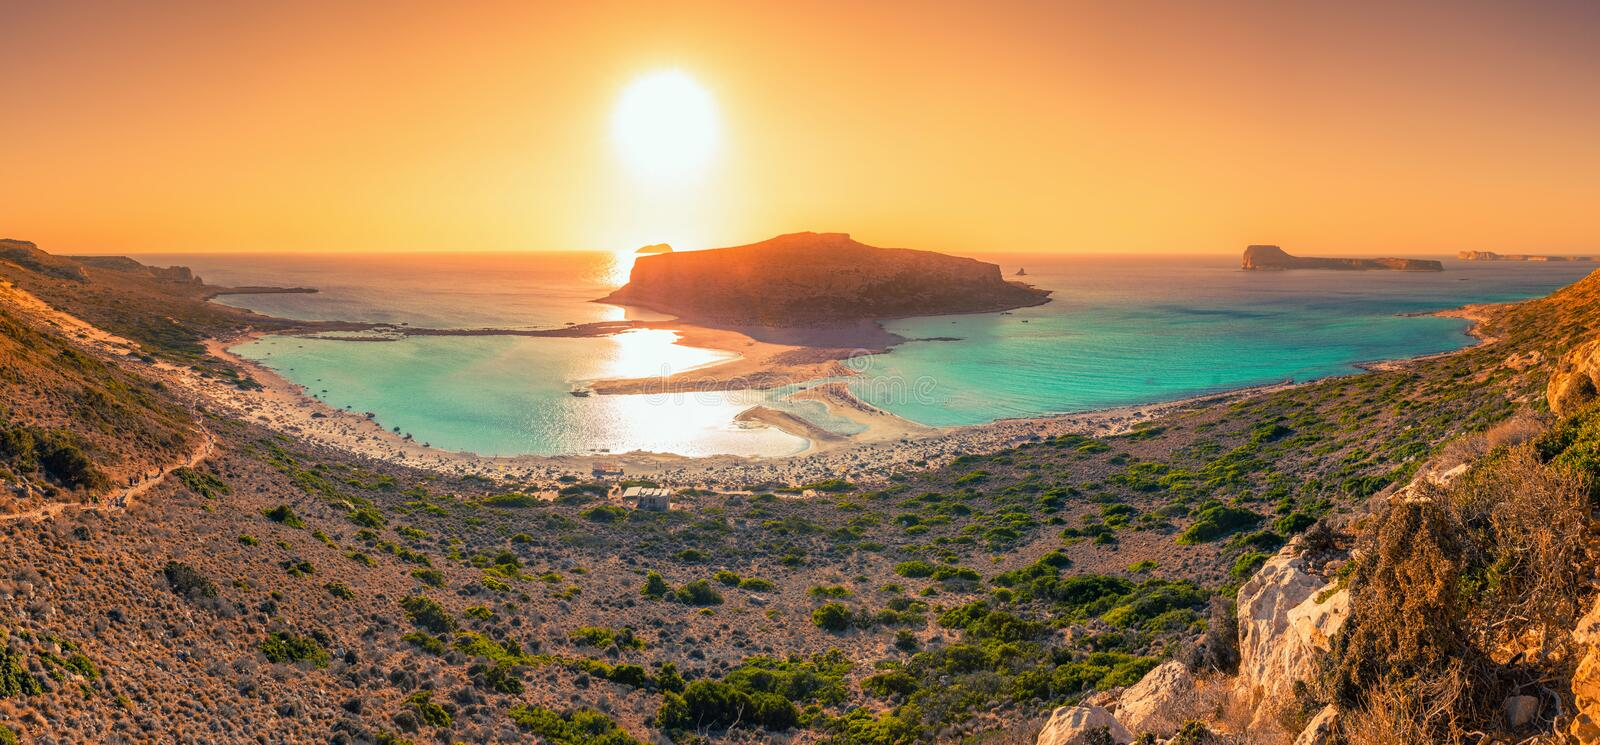 Amazing panorama of Balos Lagoon with magical turquoise waters, lagoons, tropical beaches of pure white sand and Gramvousa island. On Crete, Greece royalty free stock photos